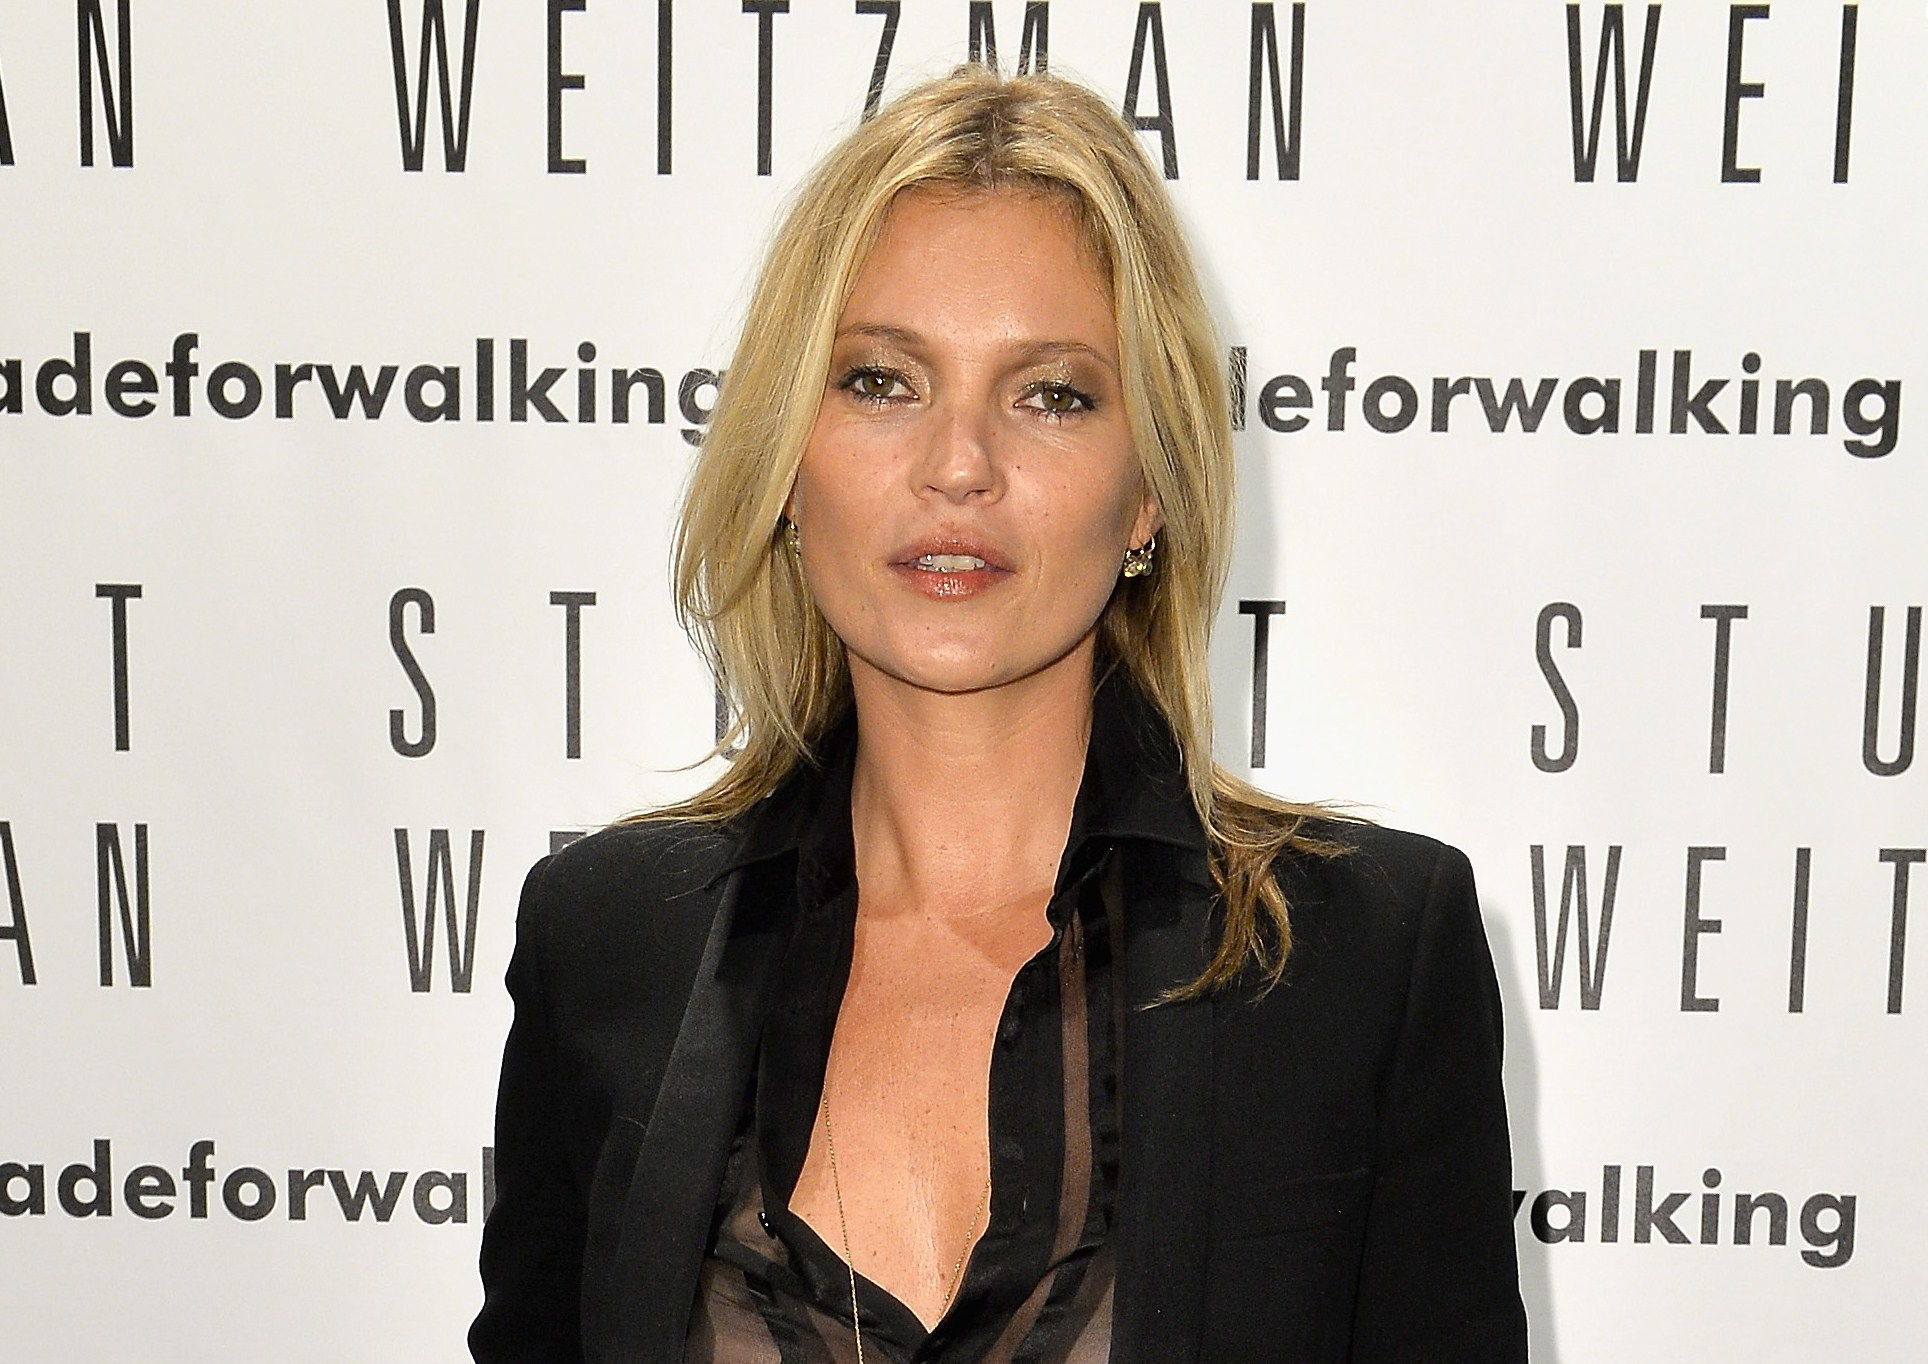 Ecco com'era Kate Moss prima di diventare famosa (VIDEO)